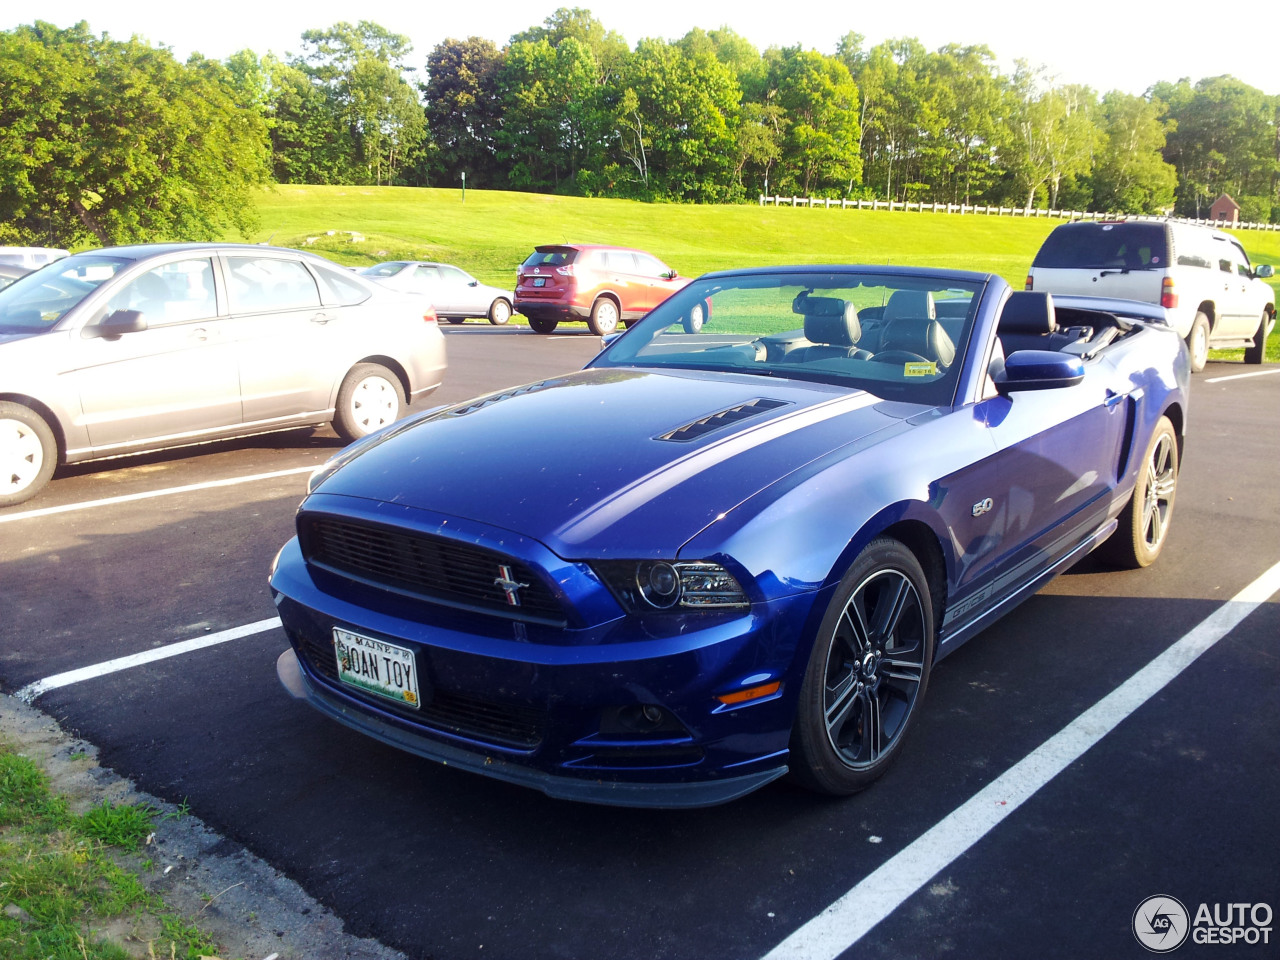 ford mustang gt california special convertible 2013 31 july 2015 autogespot. Black Bedroom Furniture Sets. Home Design Ideas